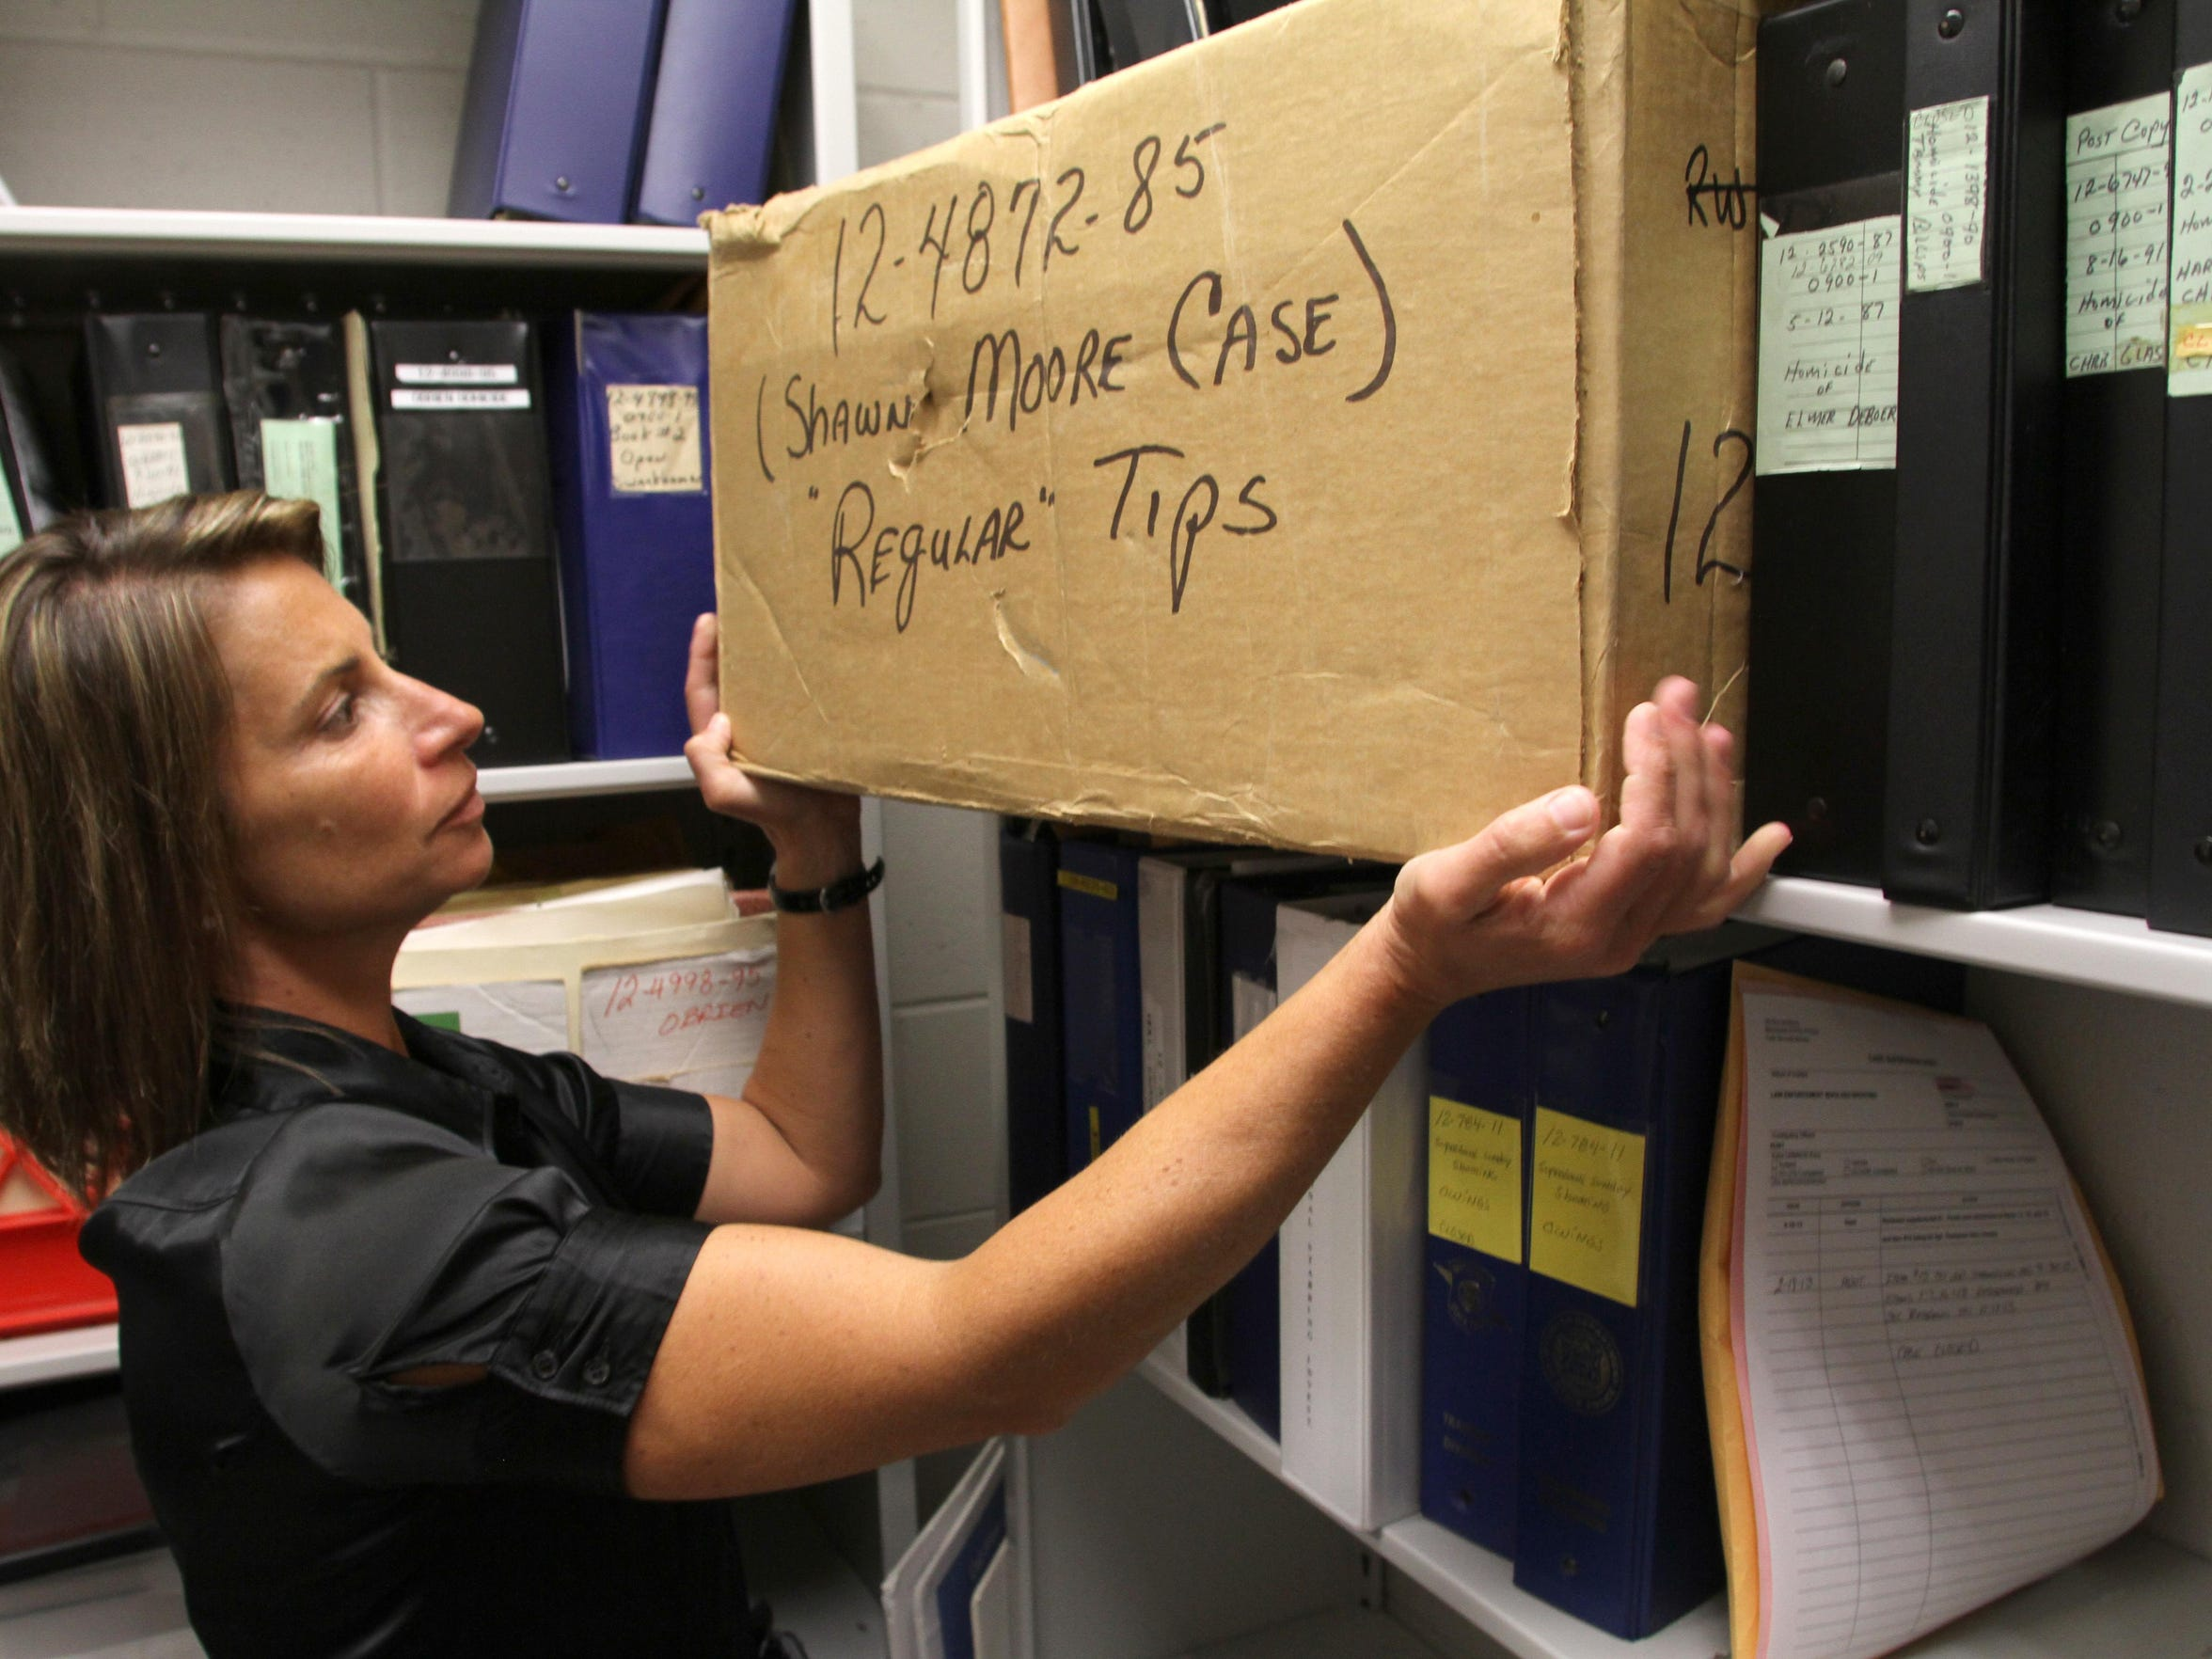 Michigan State Police Sgt. Angela Hunt of the Brighton Post shows the box containing between 1,600 and 2,000 tips from the 1985 investigation into the kidnapping and murder of 13-year-old Shawn Moore, of Green Oak Township.